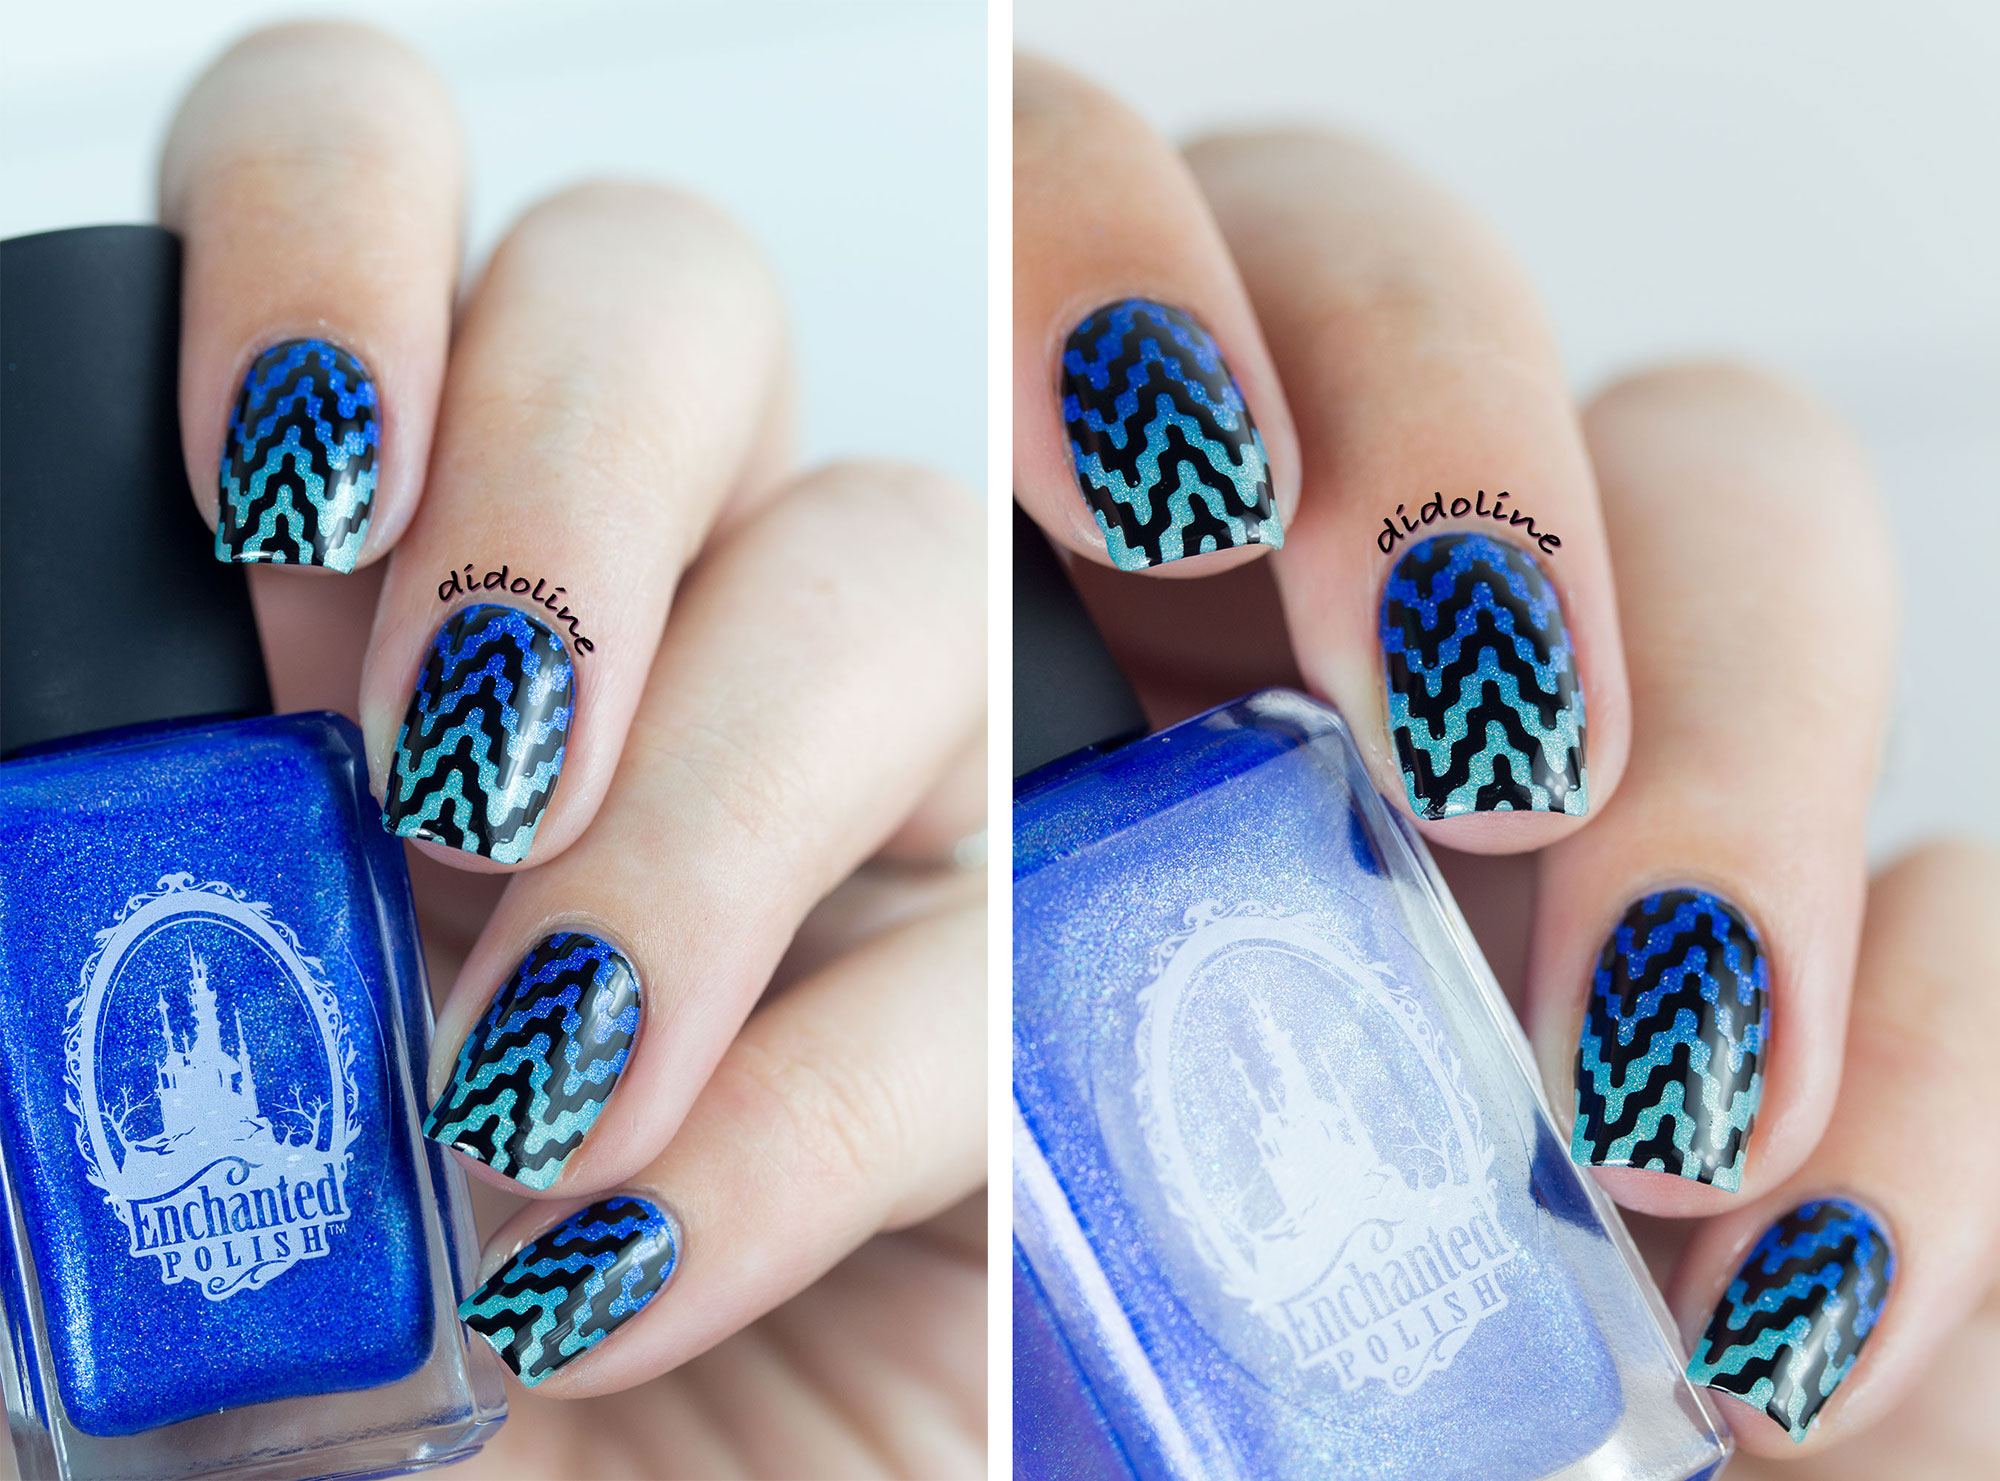 Enchanted Polish - Dégradé et stamping avec MoYou London